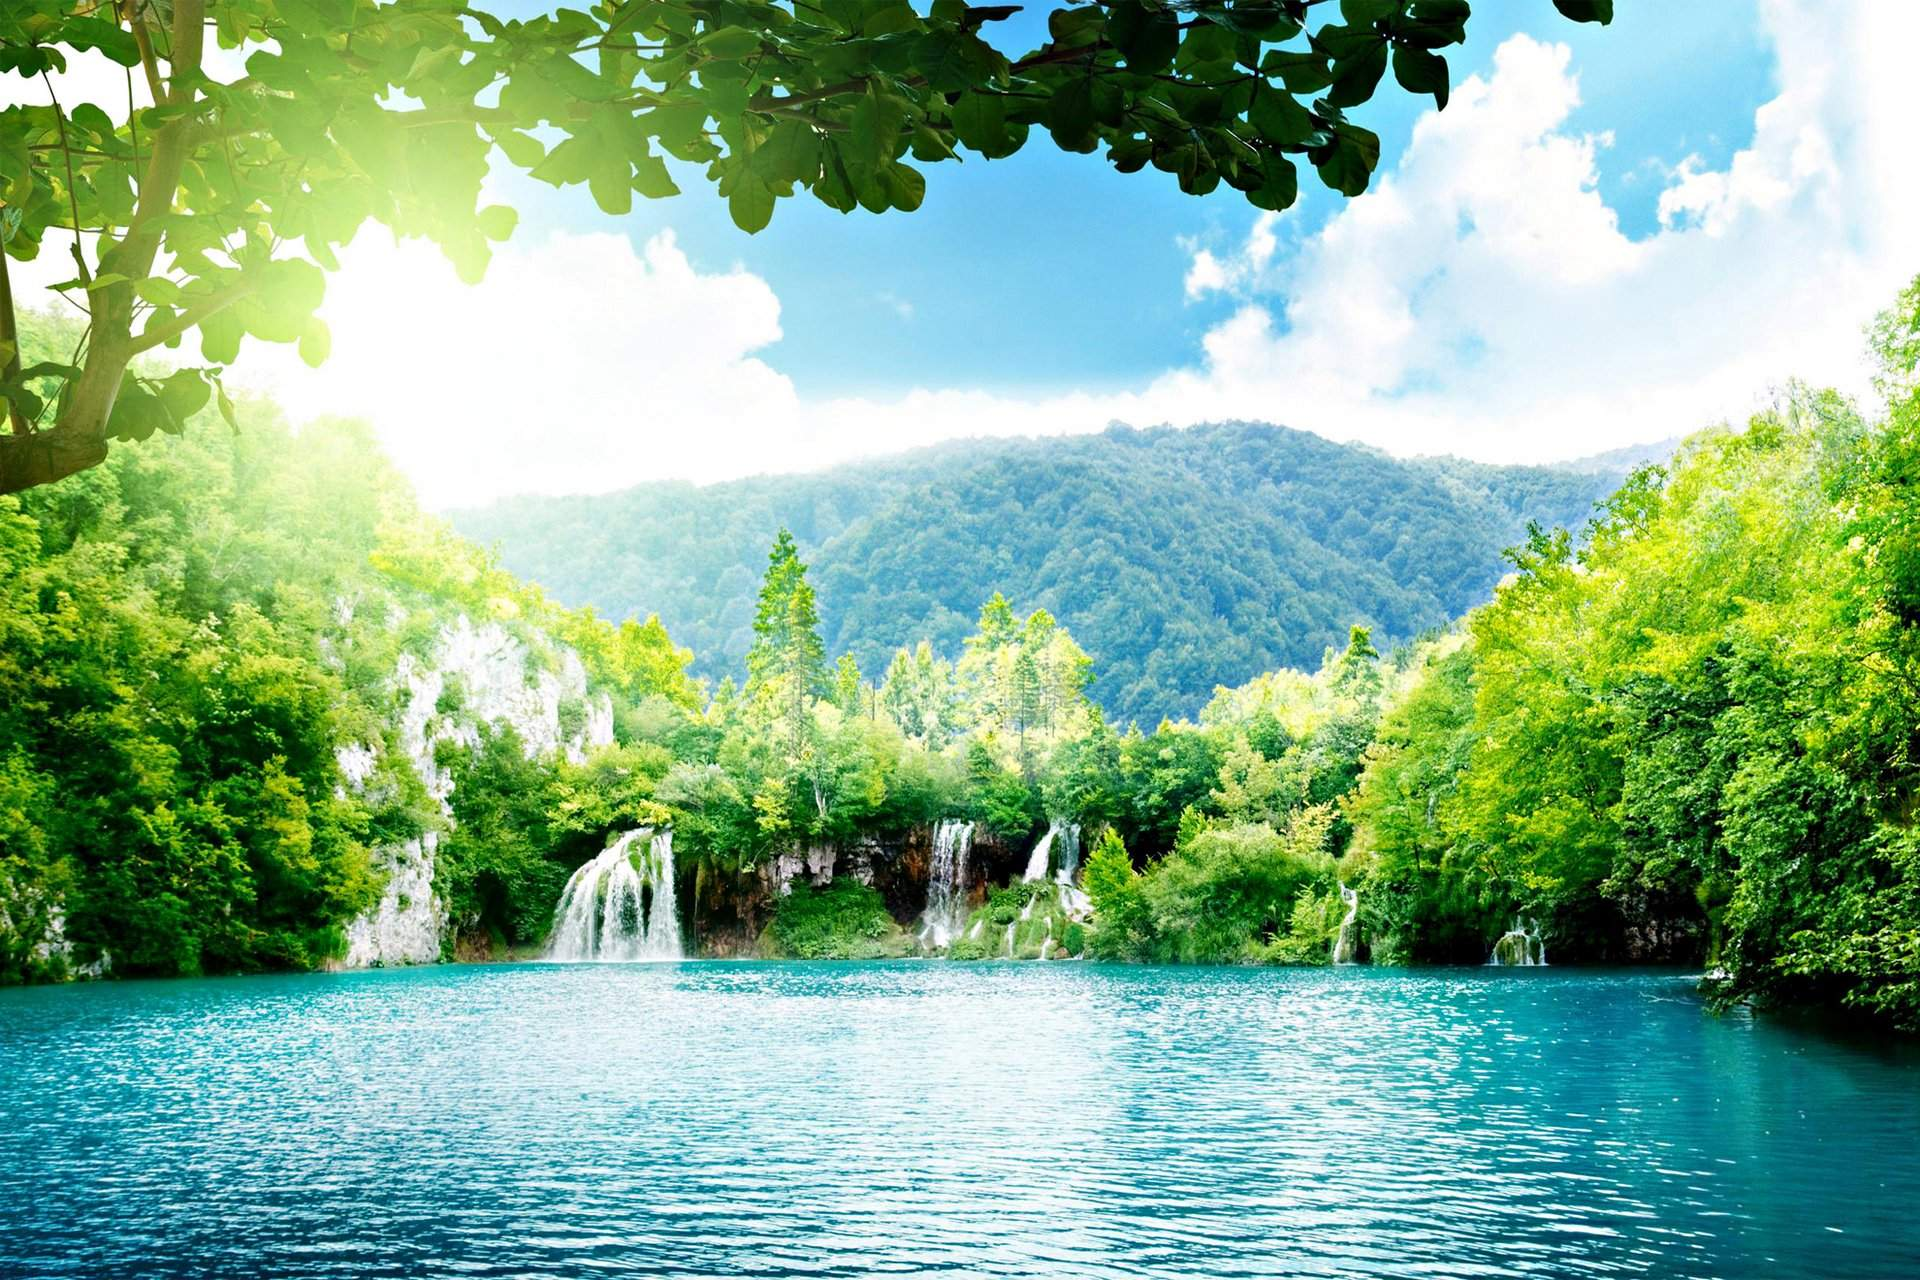 Natural Scenes Wallpapers Free Download